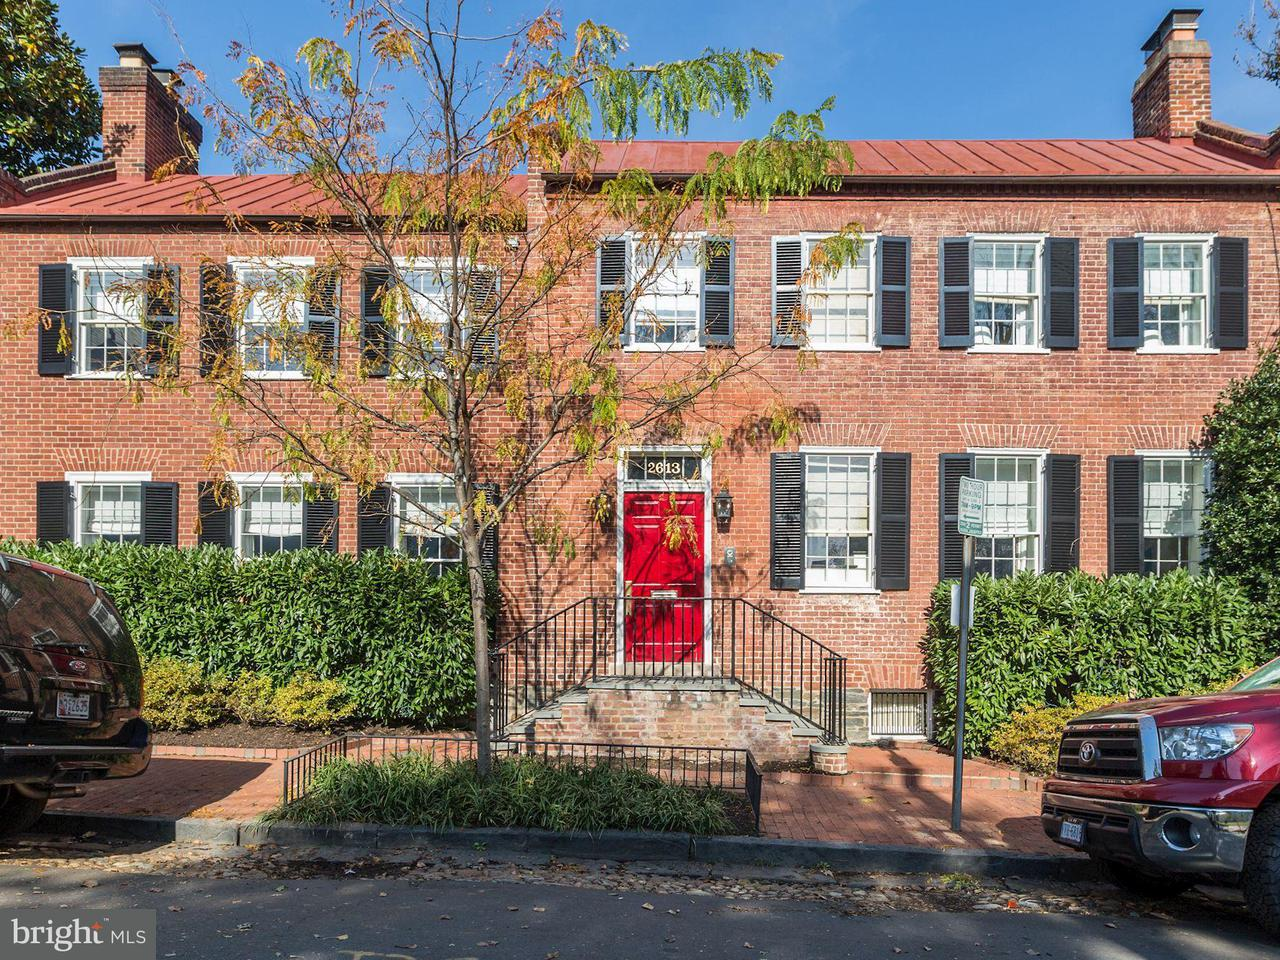 Townhouse for Sale at 2613 DUMBARTON ST NW 2613 DUMBARTON ST NW Washington, District Of Columbia 20007 United States